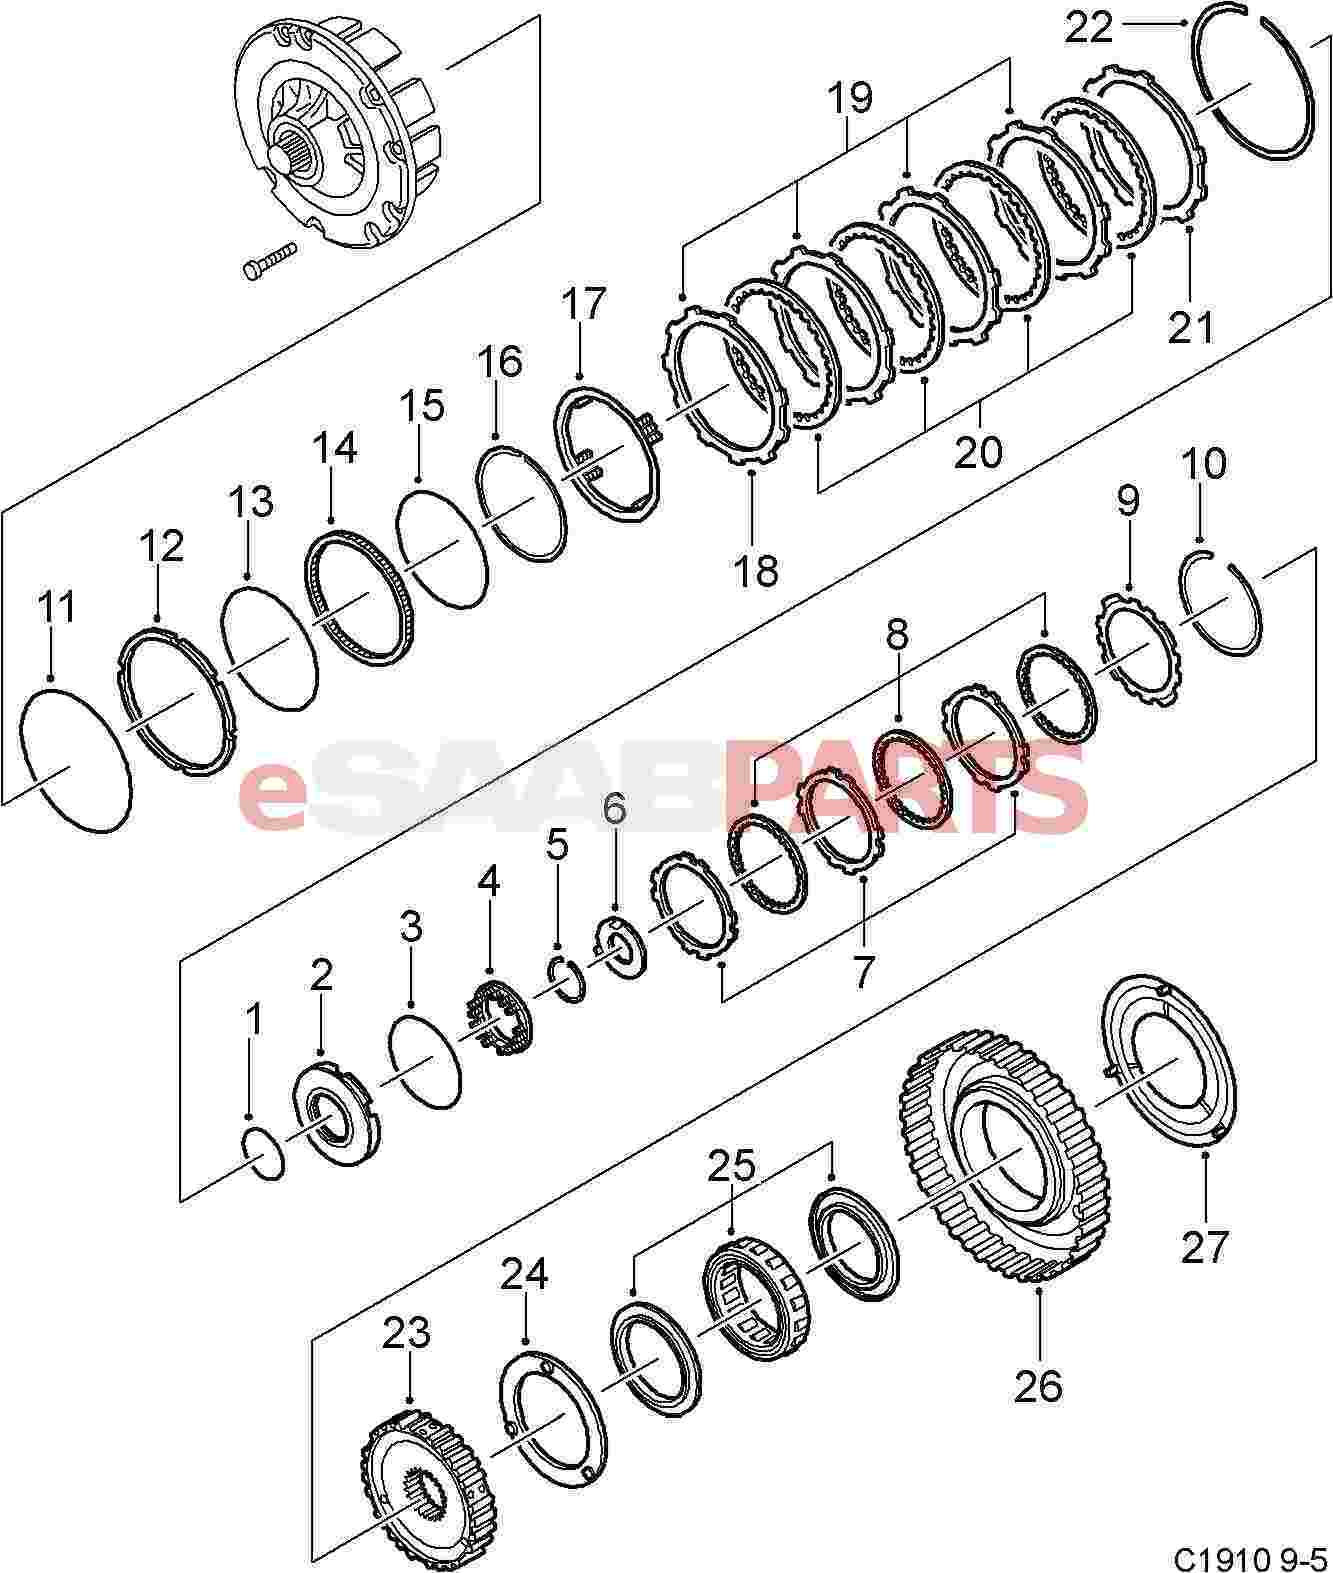 2002 saab 9 5 part diagram